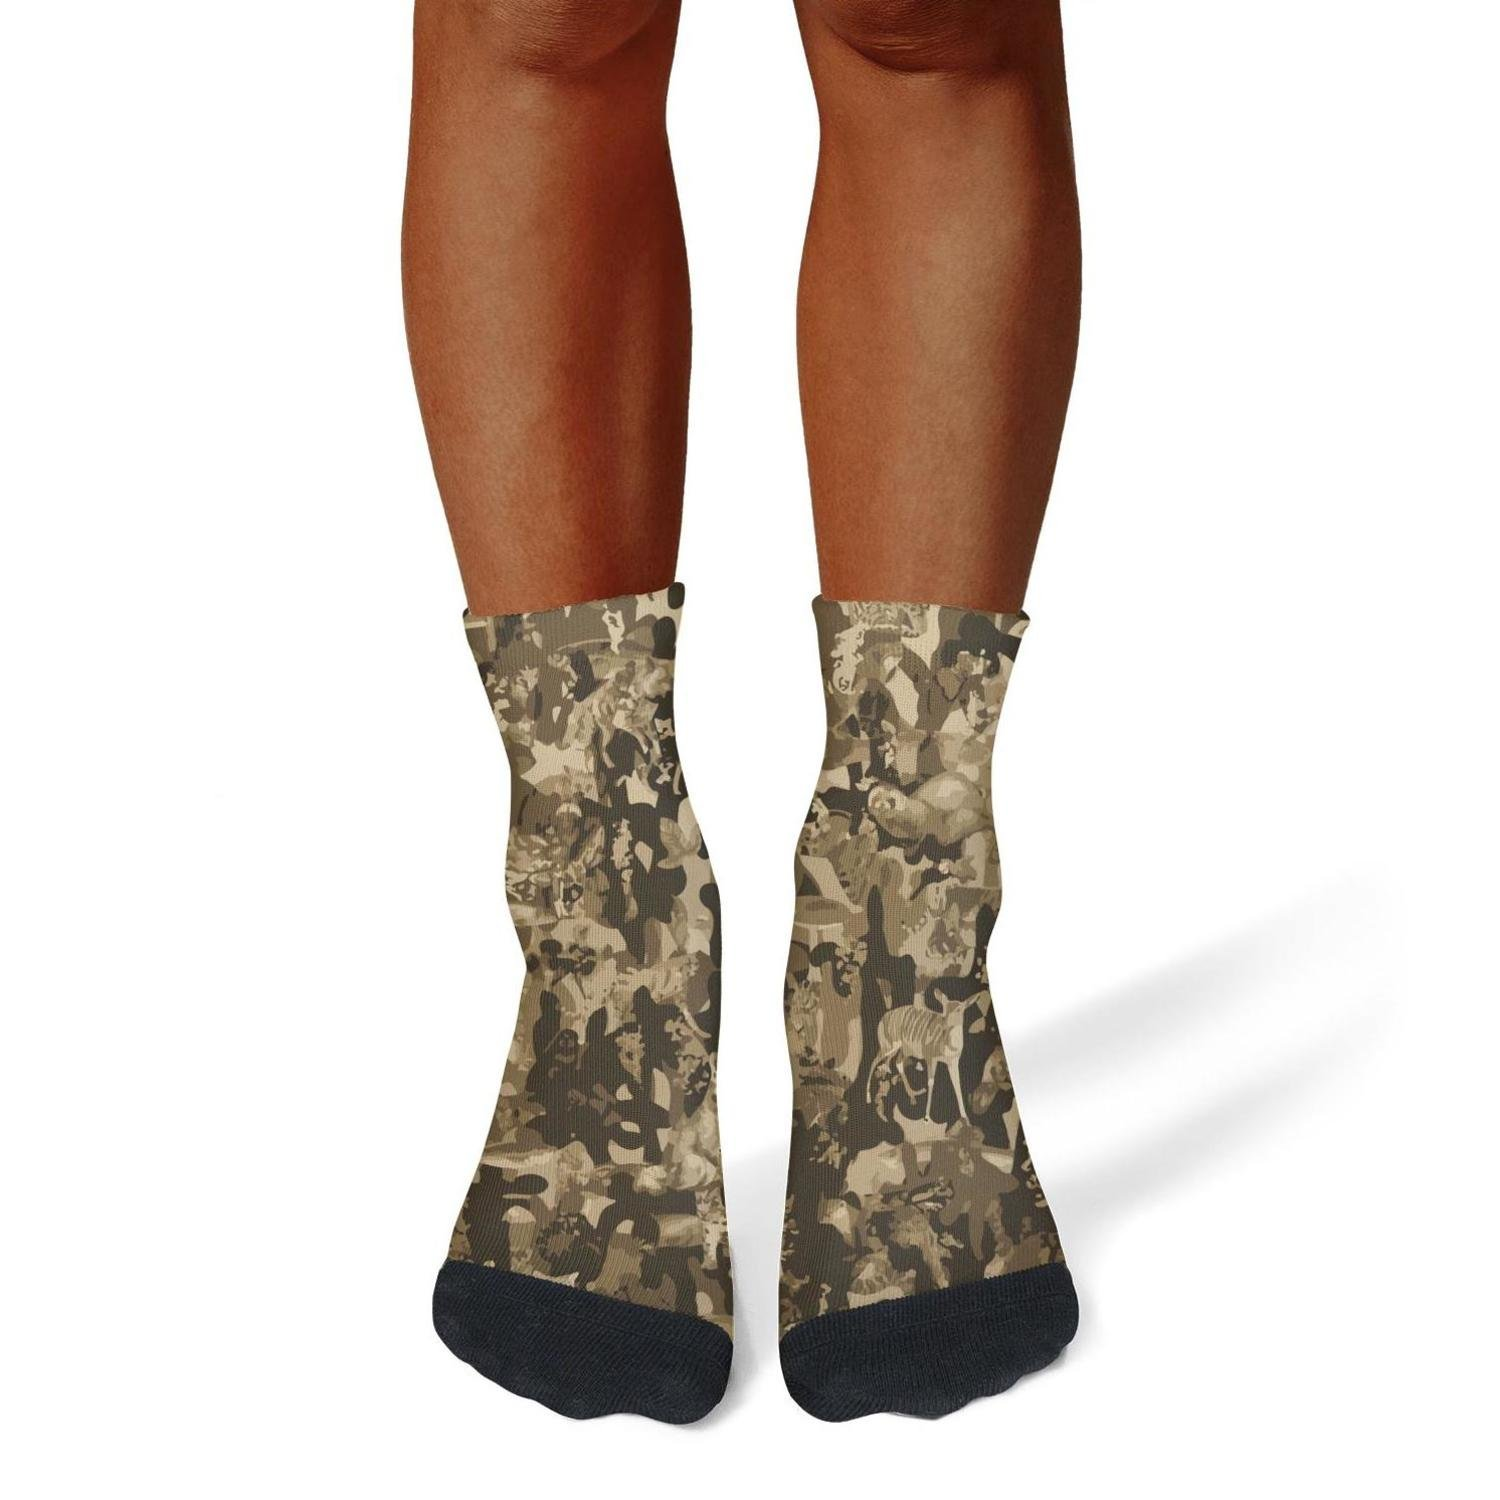 XIdan-die Mens Athletic Crew Socks animal camo Moisture Wicking Casual Socks